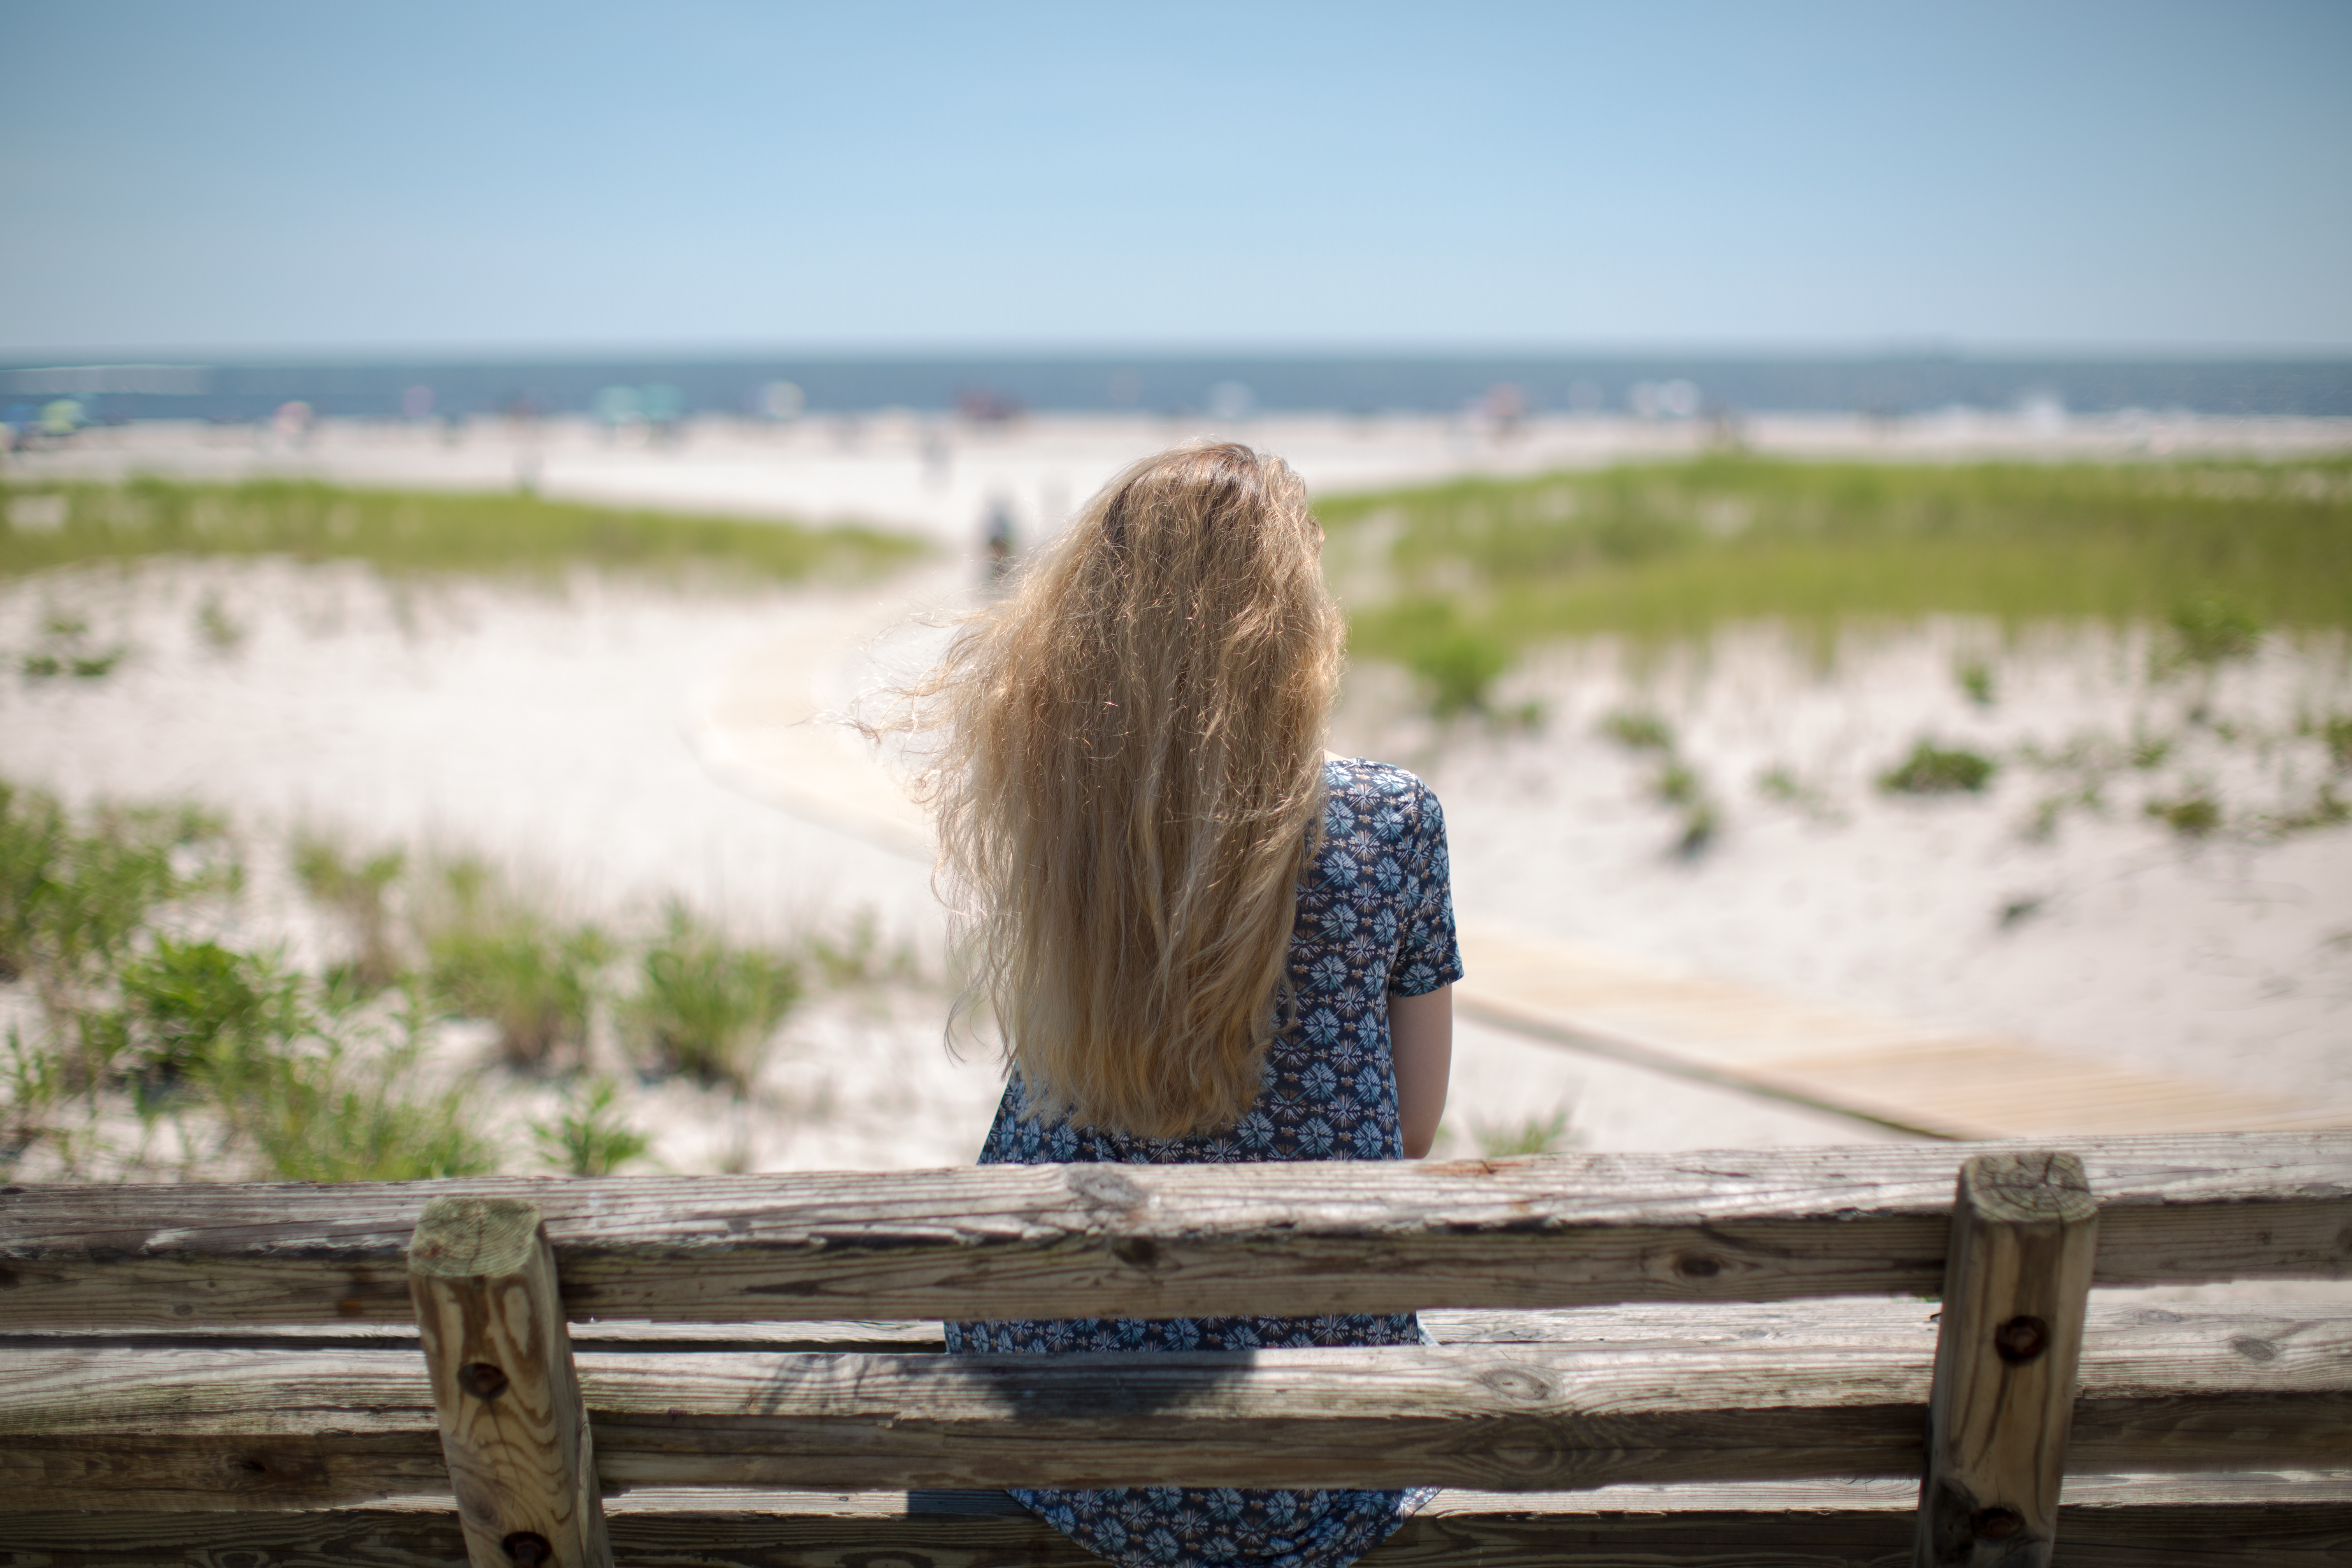 Women sitting on the bench at the ocean example image 1